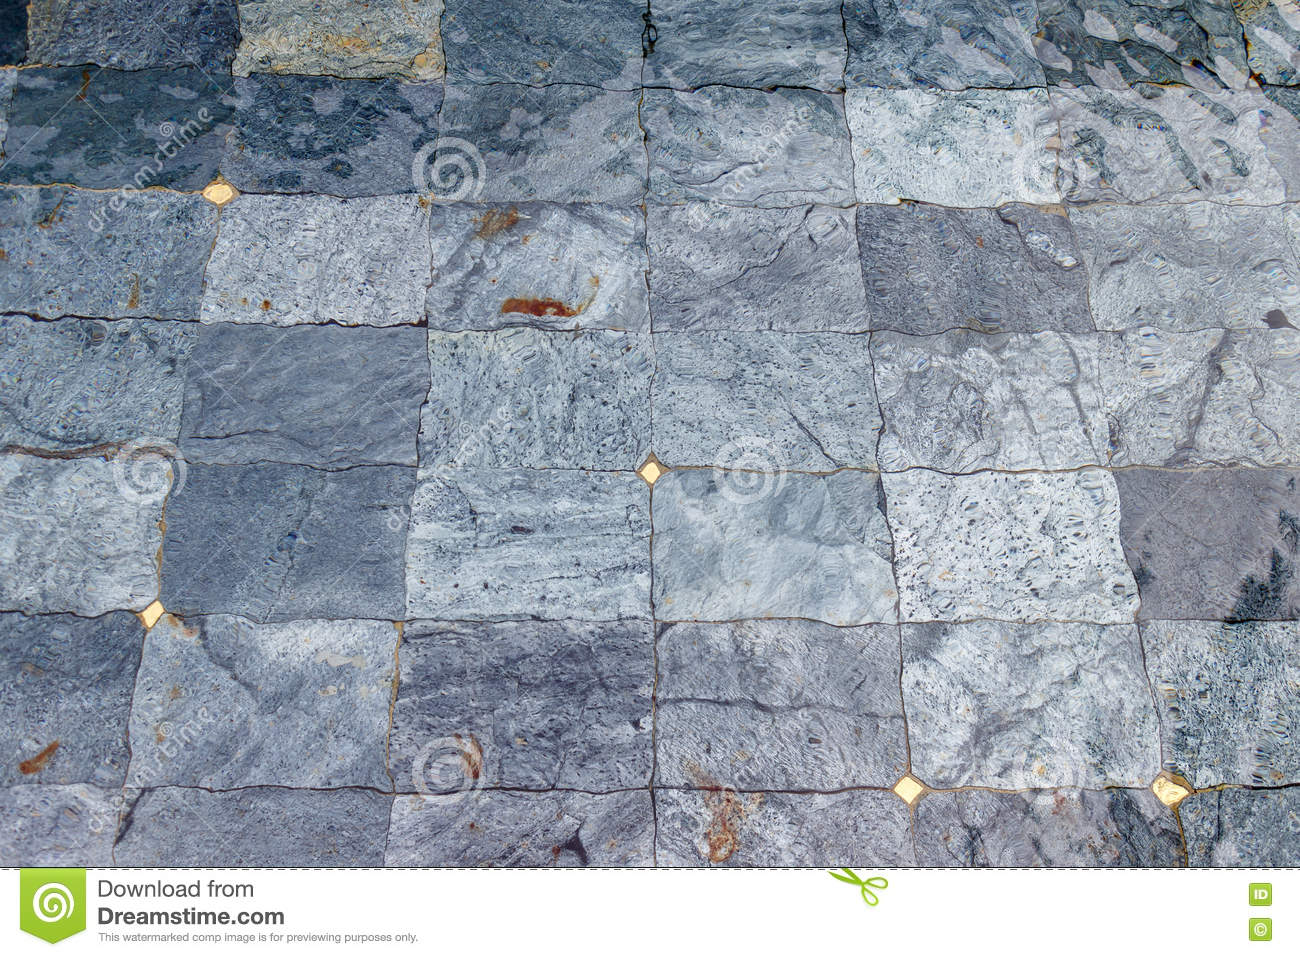 Tile underwater stock image. Image of structure, under - 73223481